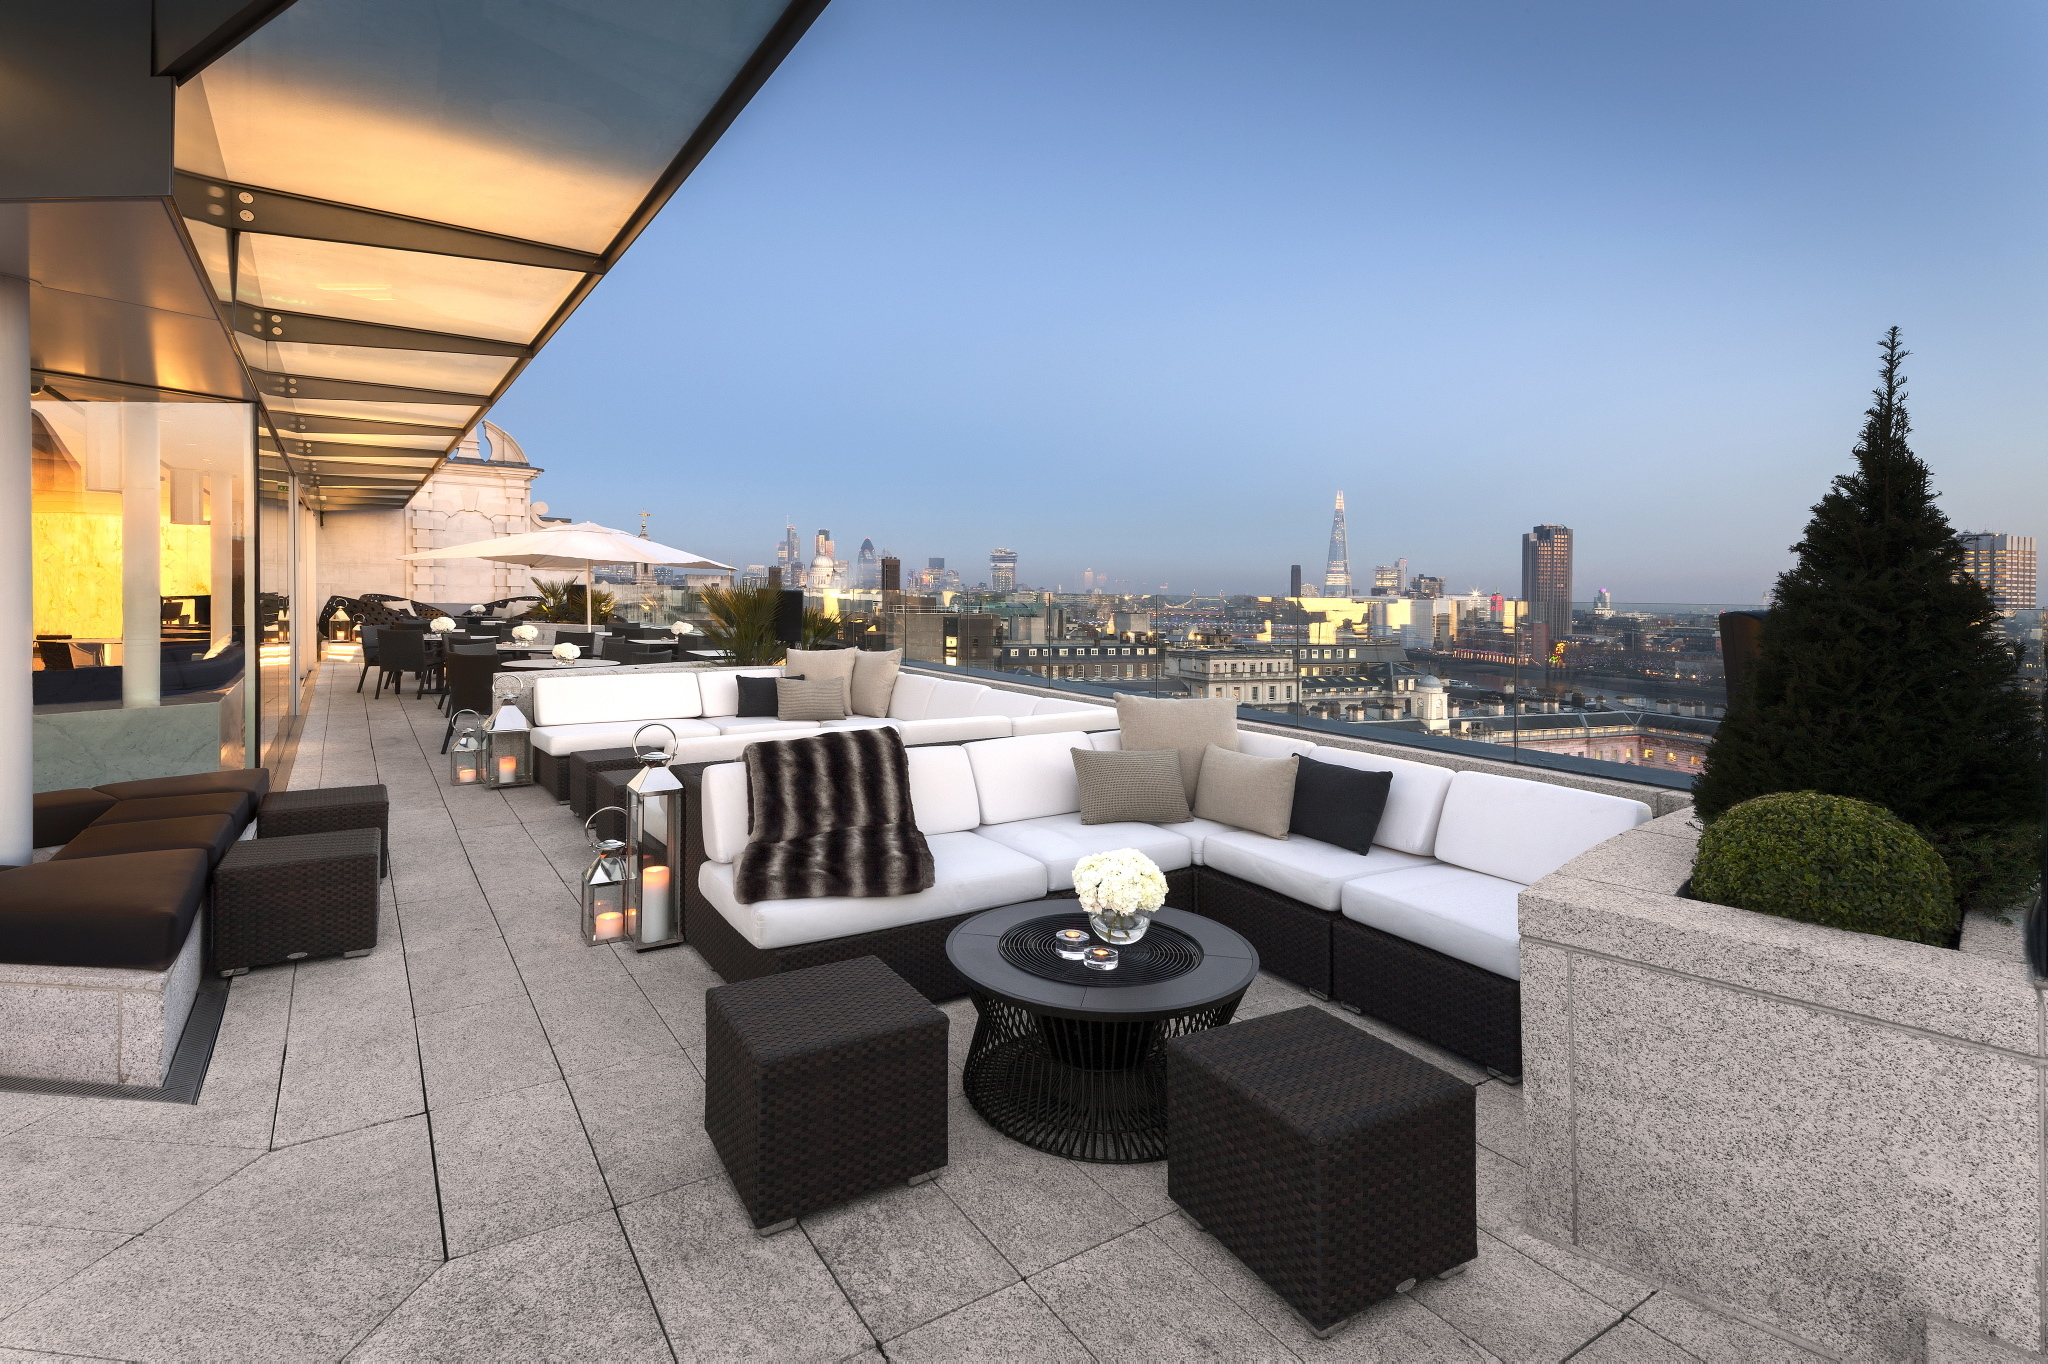 18 Of The Best Rooftop Restaurants In London : image from www.timeout.com size 2048 x 1364 jpeg 1401kB